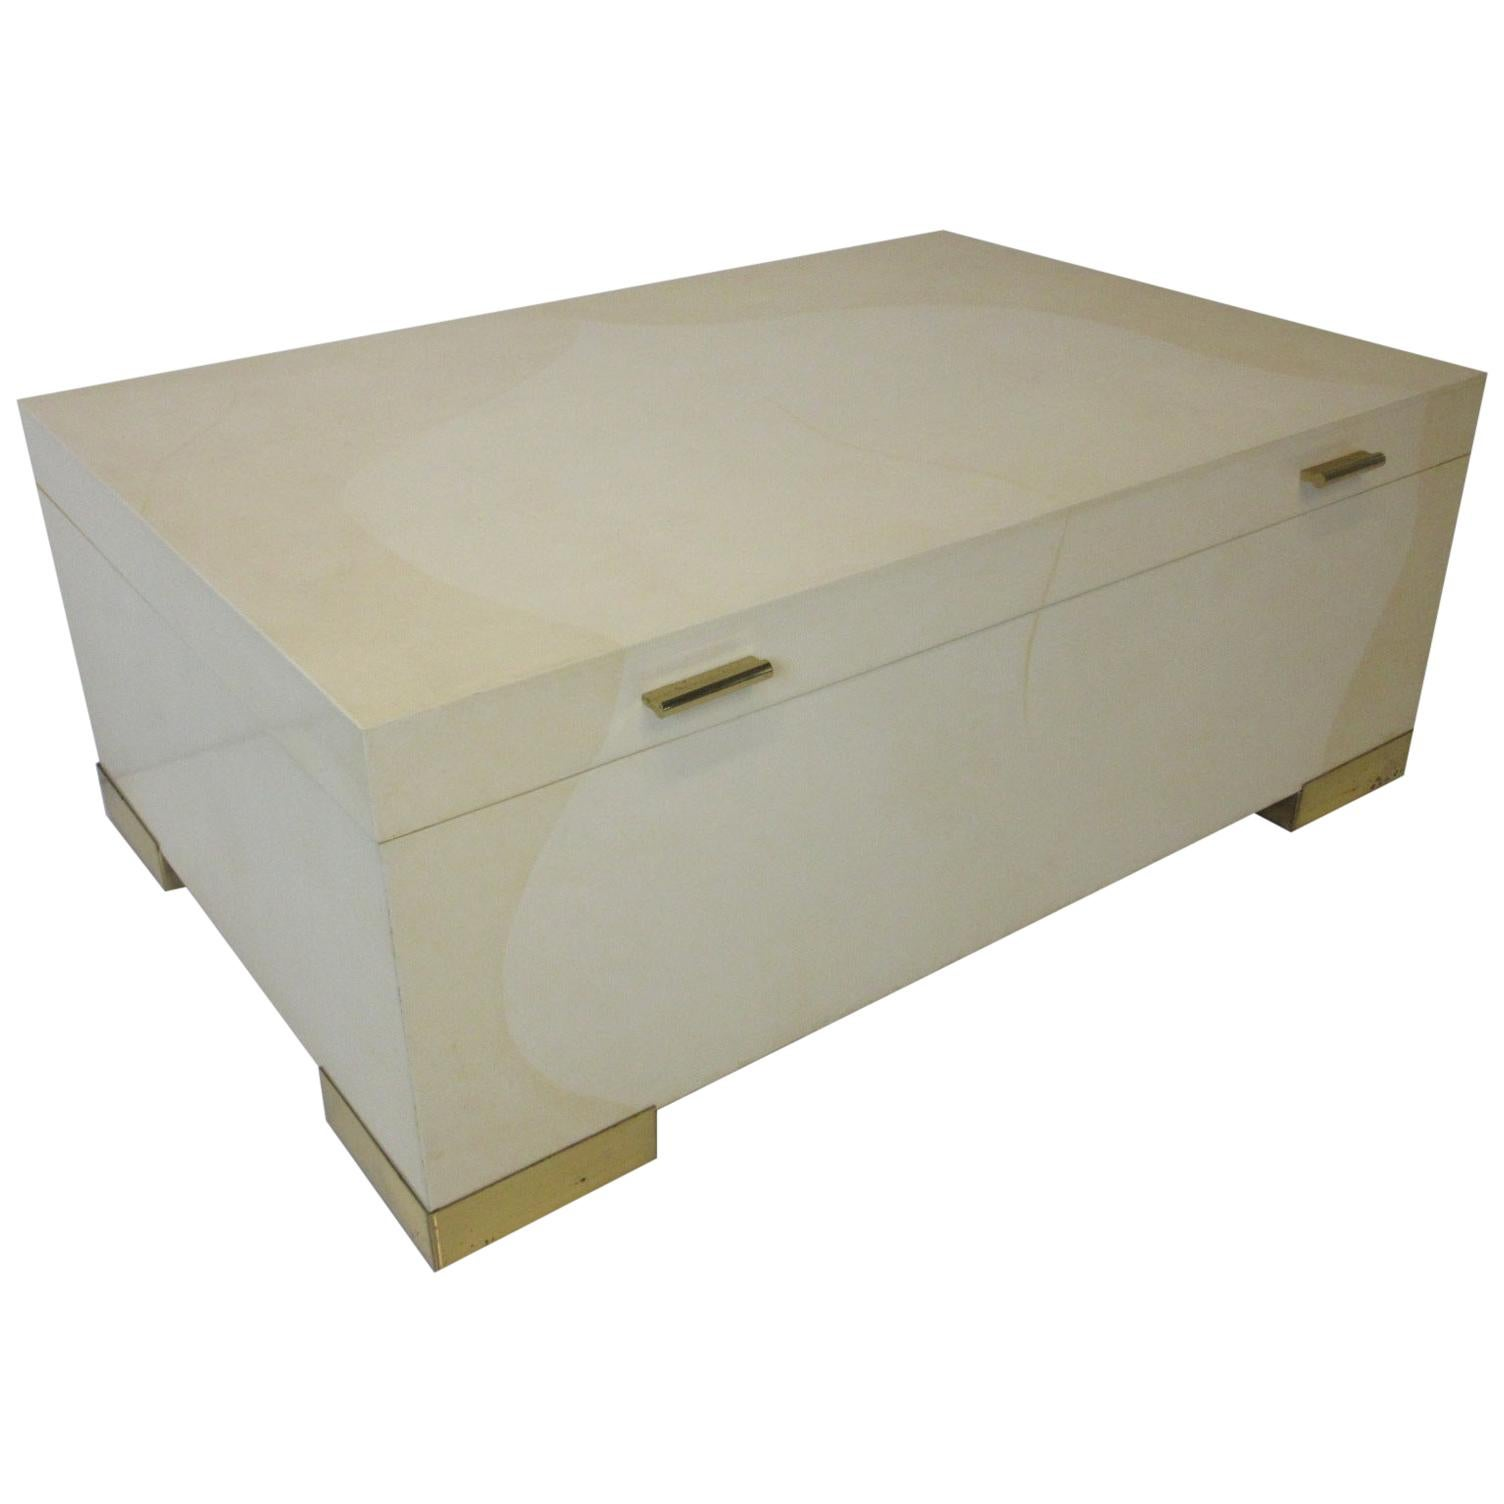 Karl Springer Brass and Goatskin Coffee Table with Storage